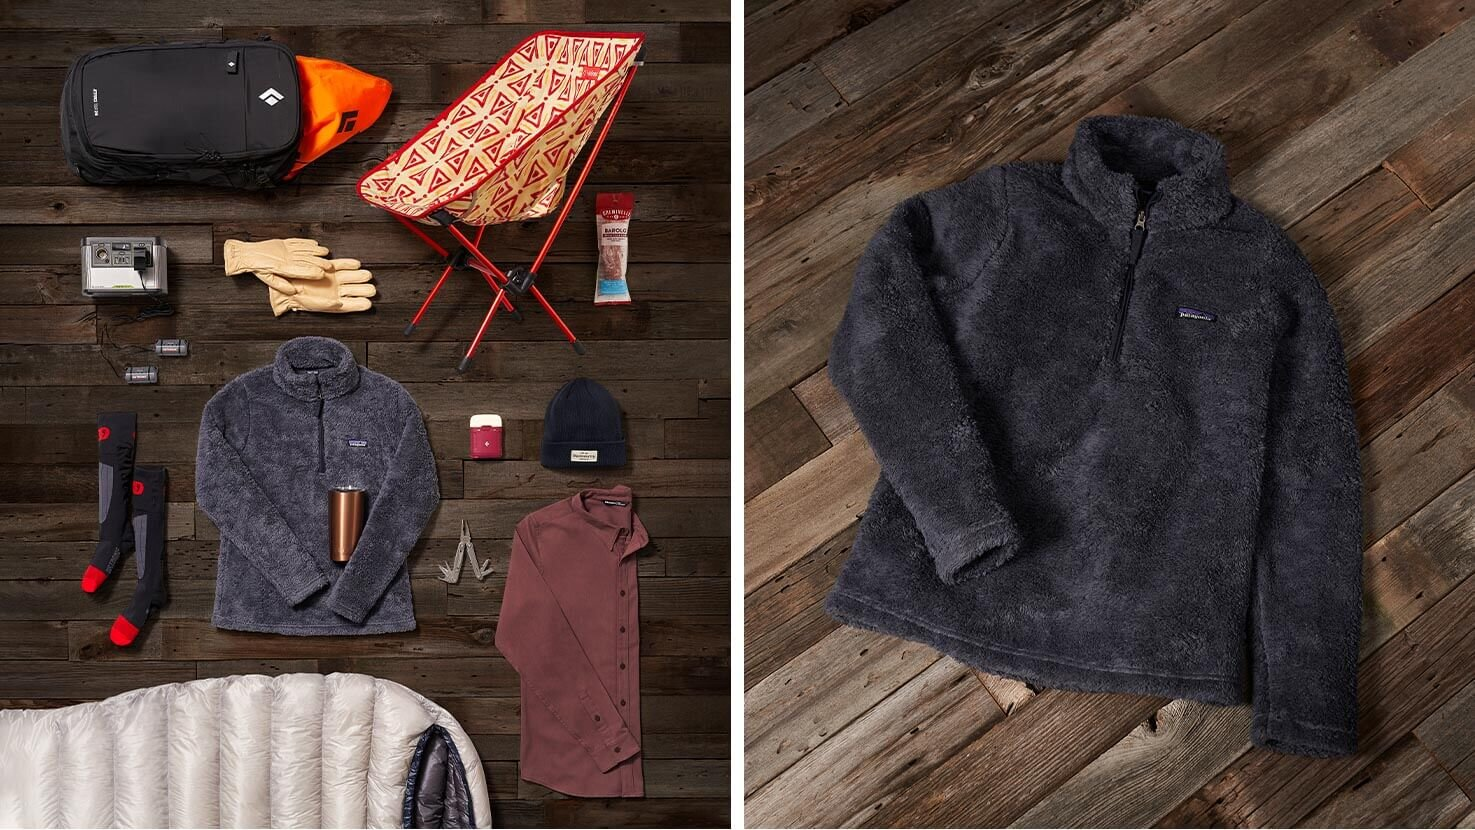 Shown in  Backcountry  Photos:   Helinox Camp Chair   ,    Marmot Basic Work Glove   ,   Backcountry Granite Beanie  ,    Patagonia Los Gatos Jacket   ,   Backcountry Fendler Flannel  , and   Leatherman Rebar Multi-Tool  .